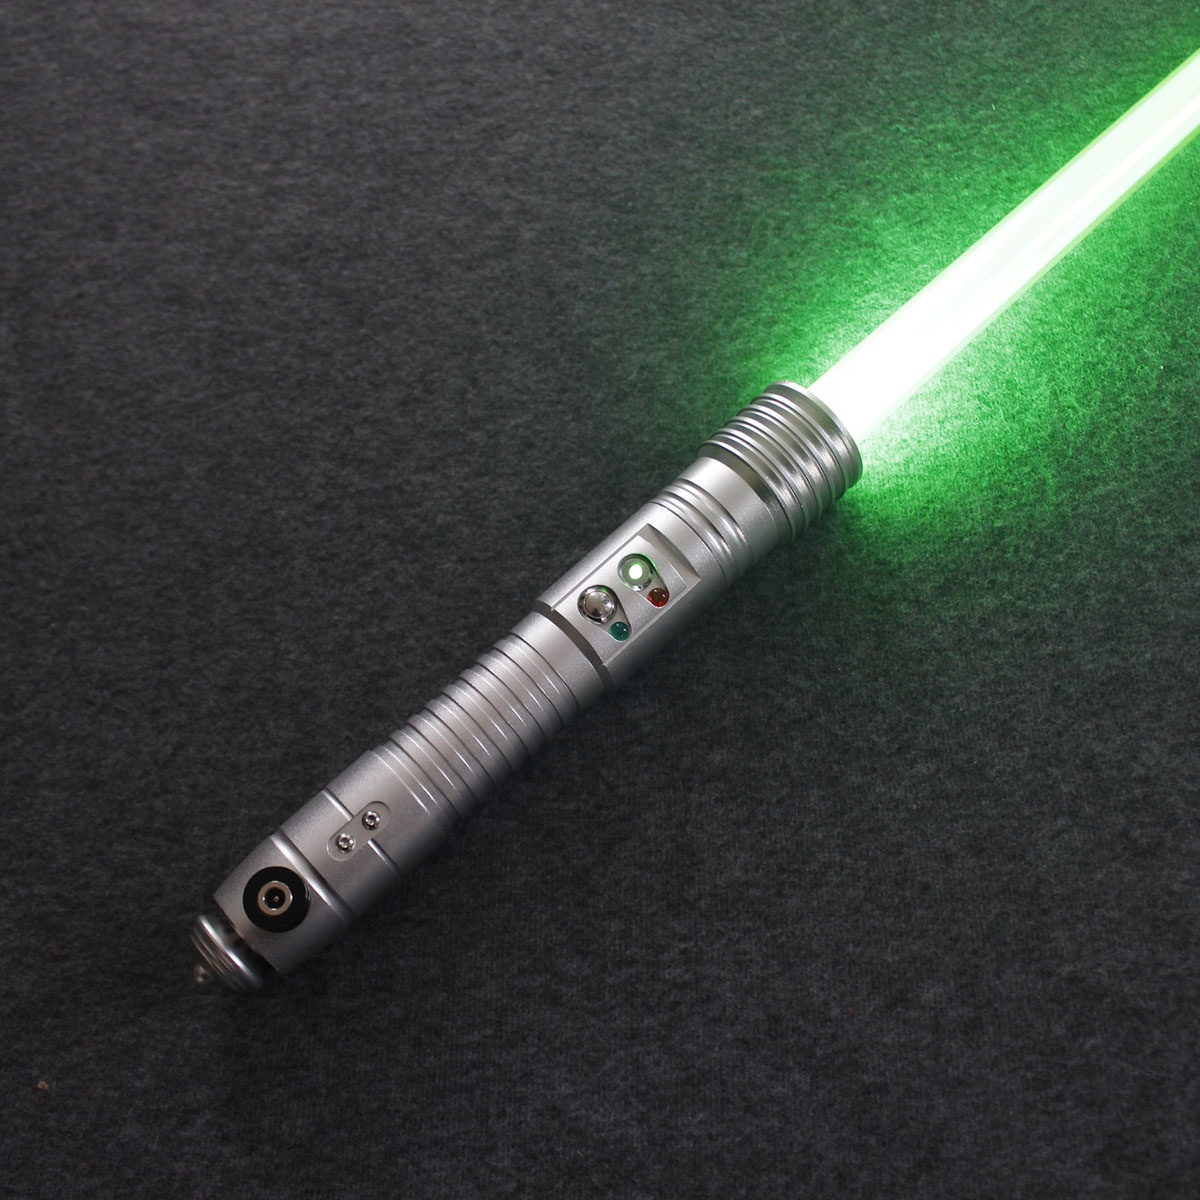 Festo 100cm 6 Color 12W Lightsaber Metal Sword Toy 3 Sets Of Sound Plus Mute Laser Jedi Sith Luke Light Saber Handle Metal Sword